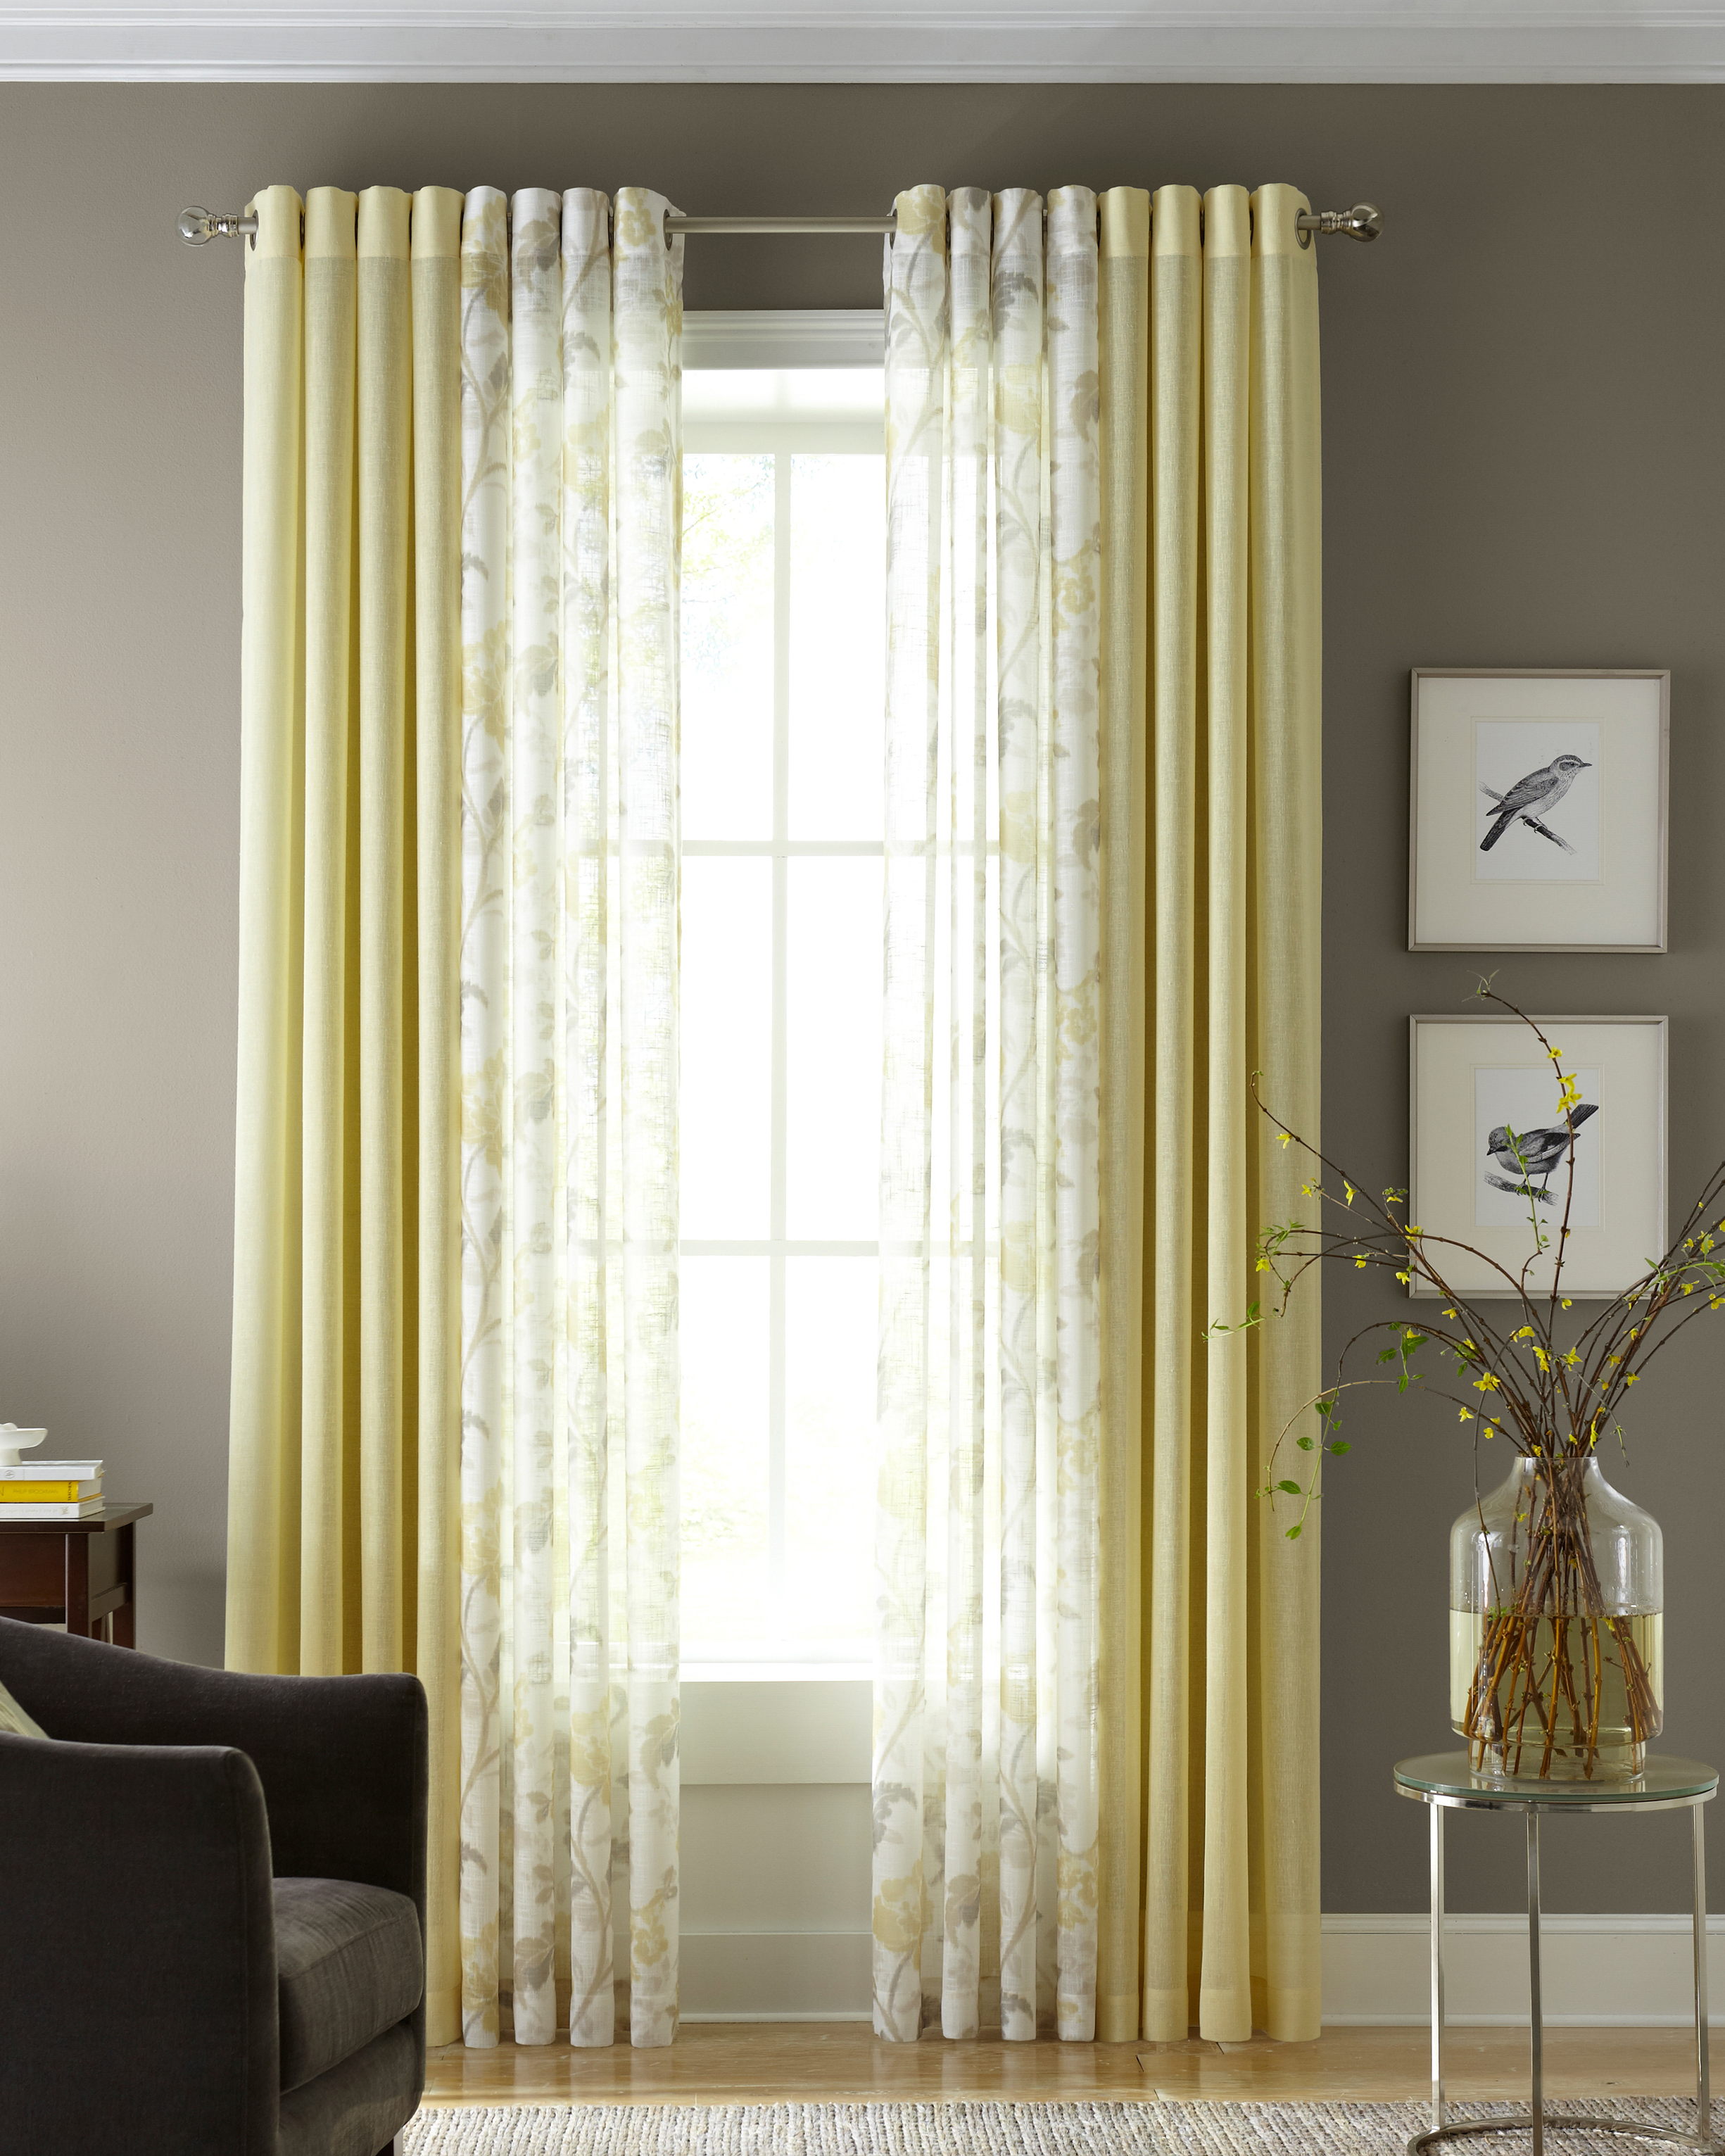 Window Treatments: Once a Month